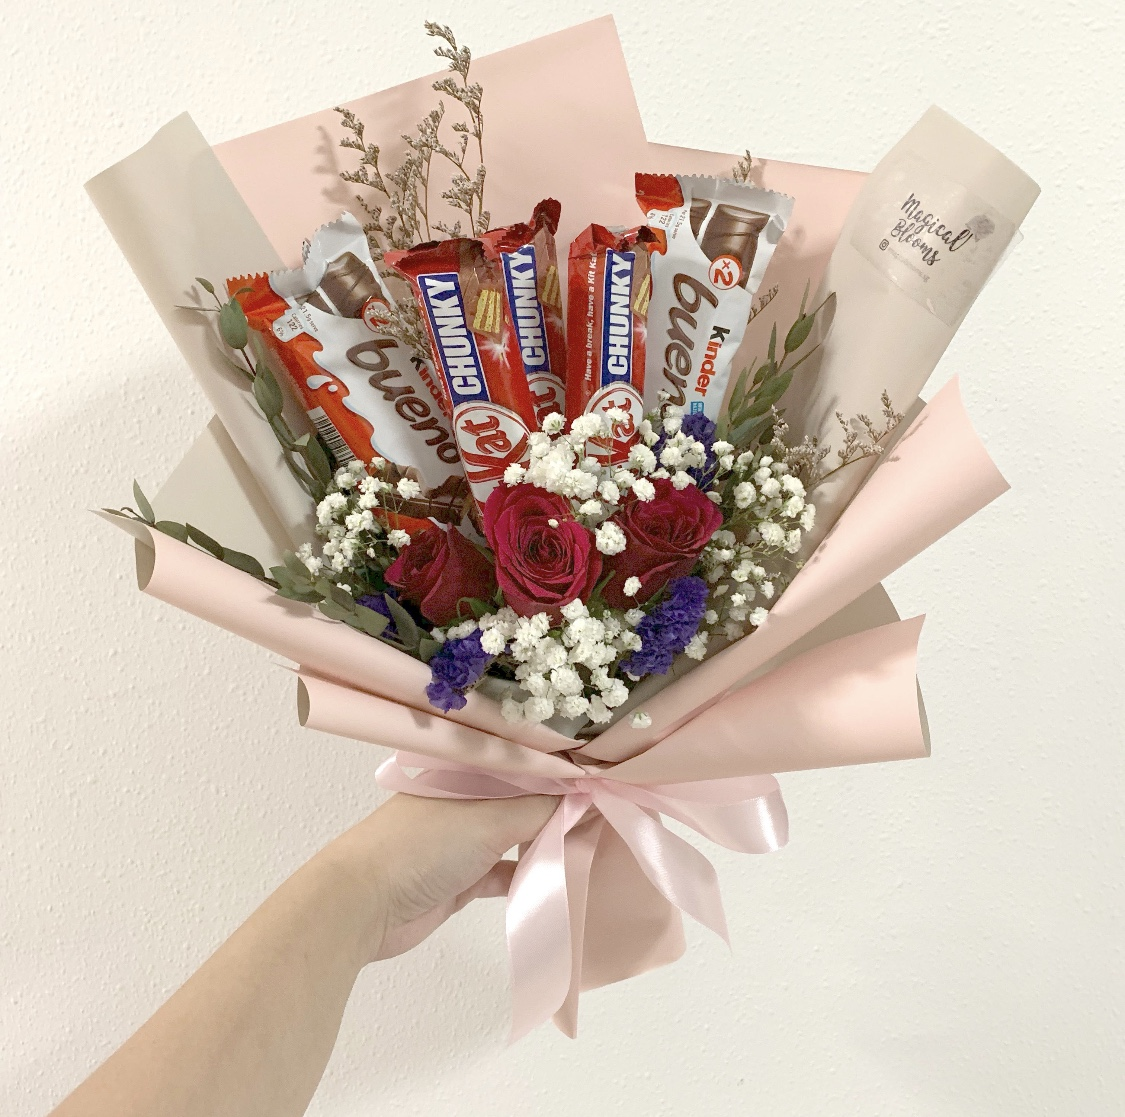 Kinder Bueno, Kit Kat Chunky chocolate bouquet